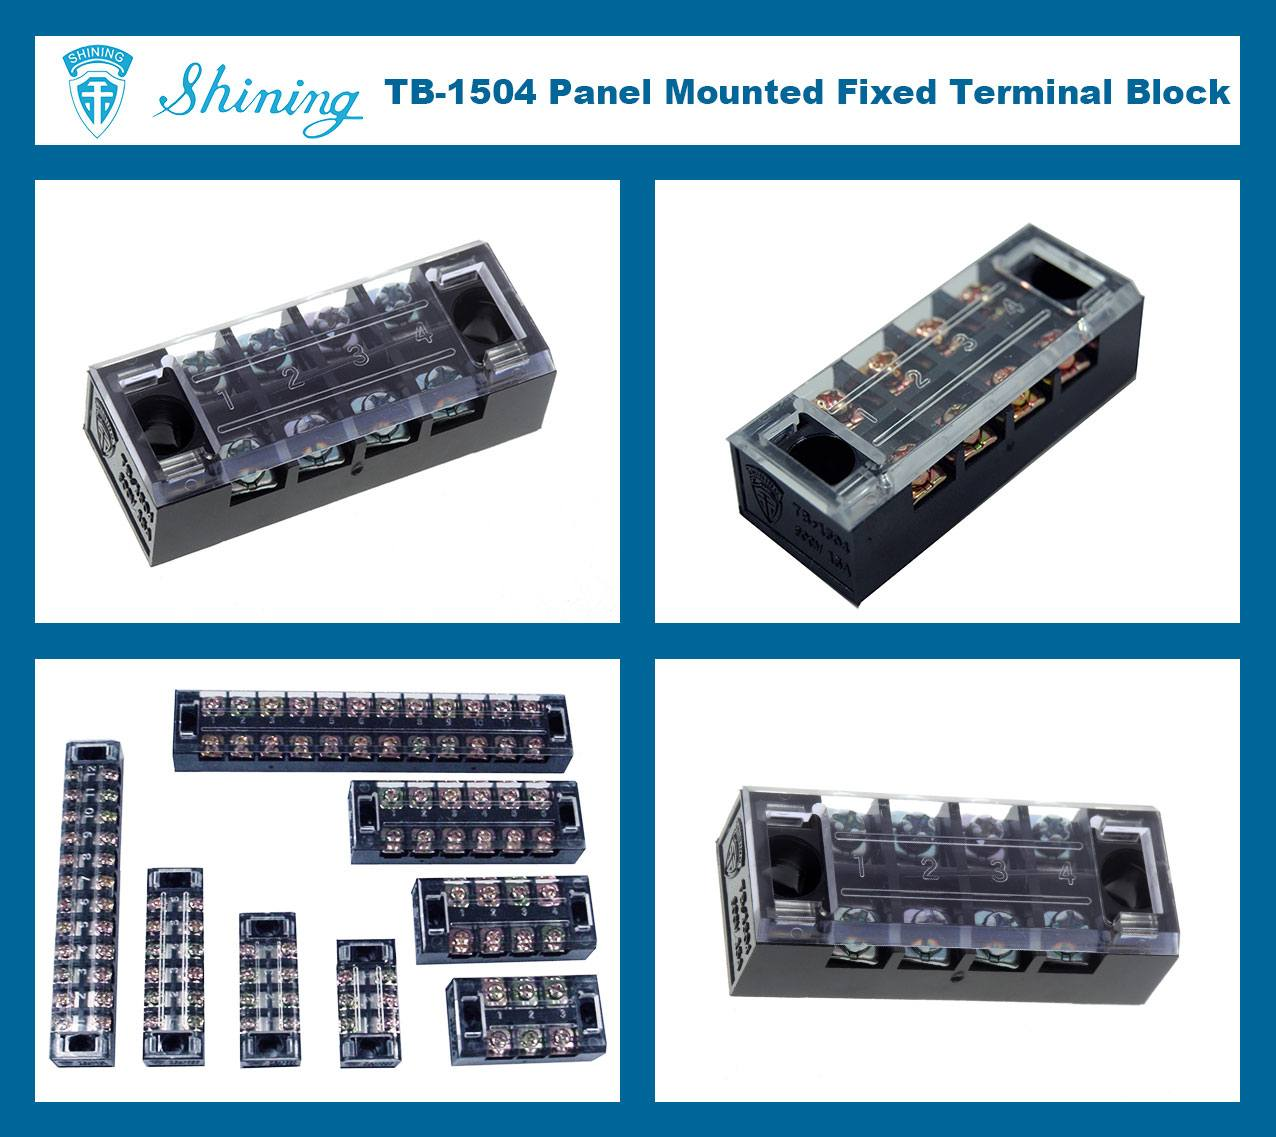 TB-1504 Panel Mounted Fixed Barrier 15A 4 Pole Terminal Block